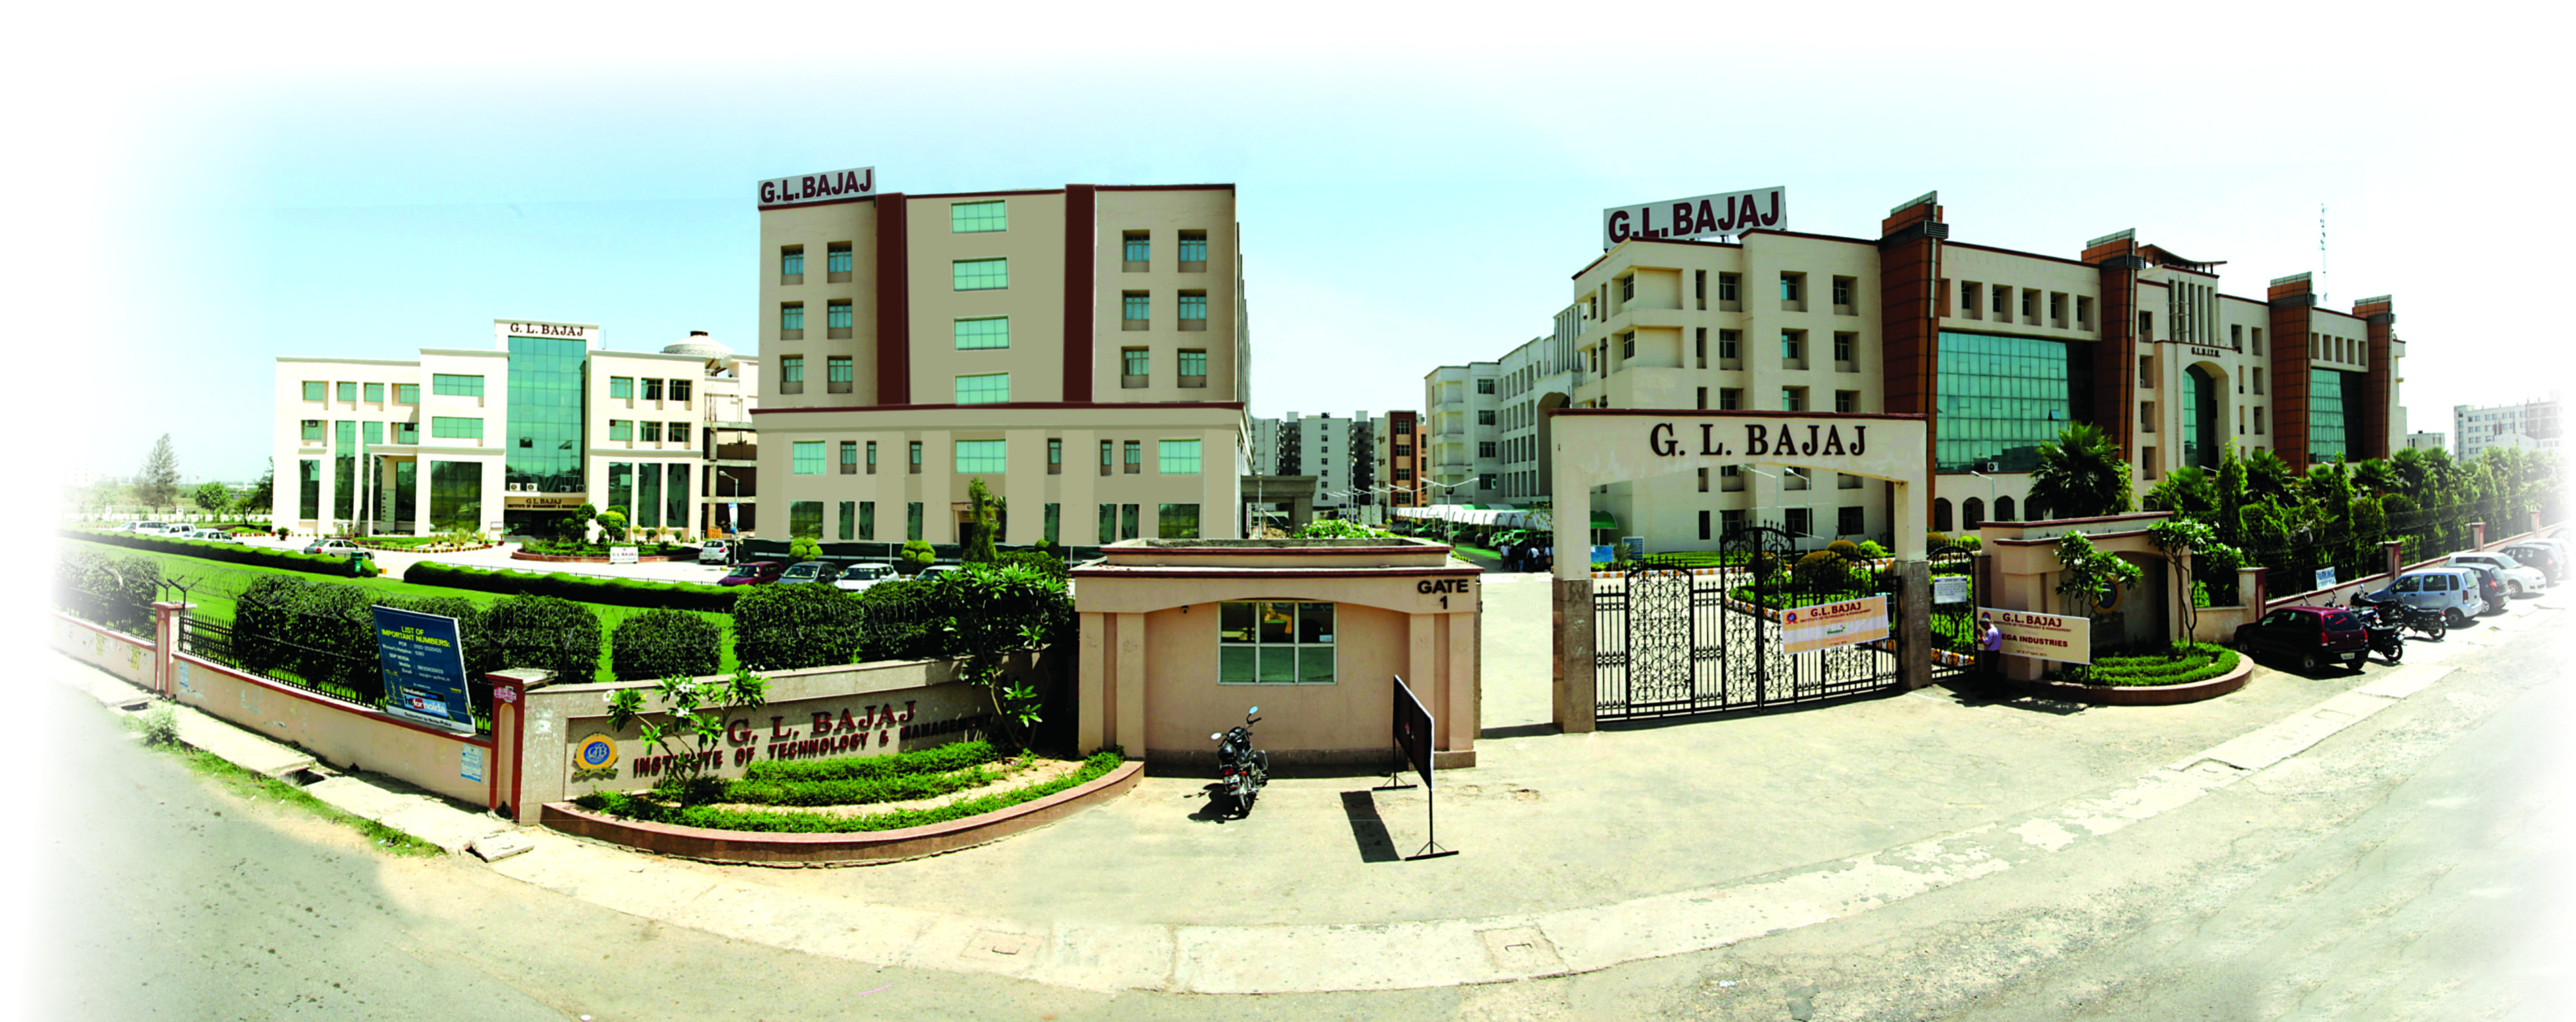 G.L. Bajaj Institute Of Technology And Management, Noida